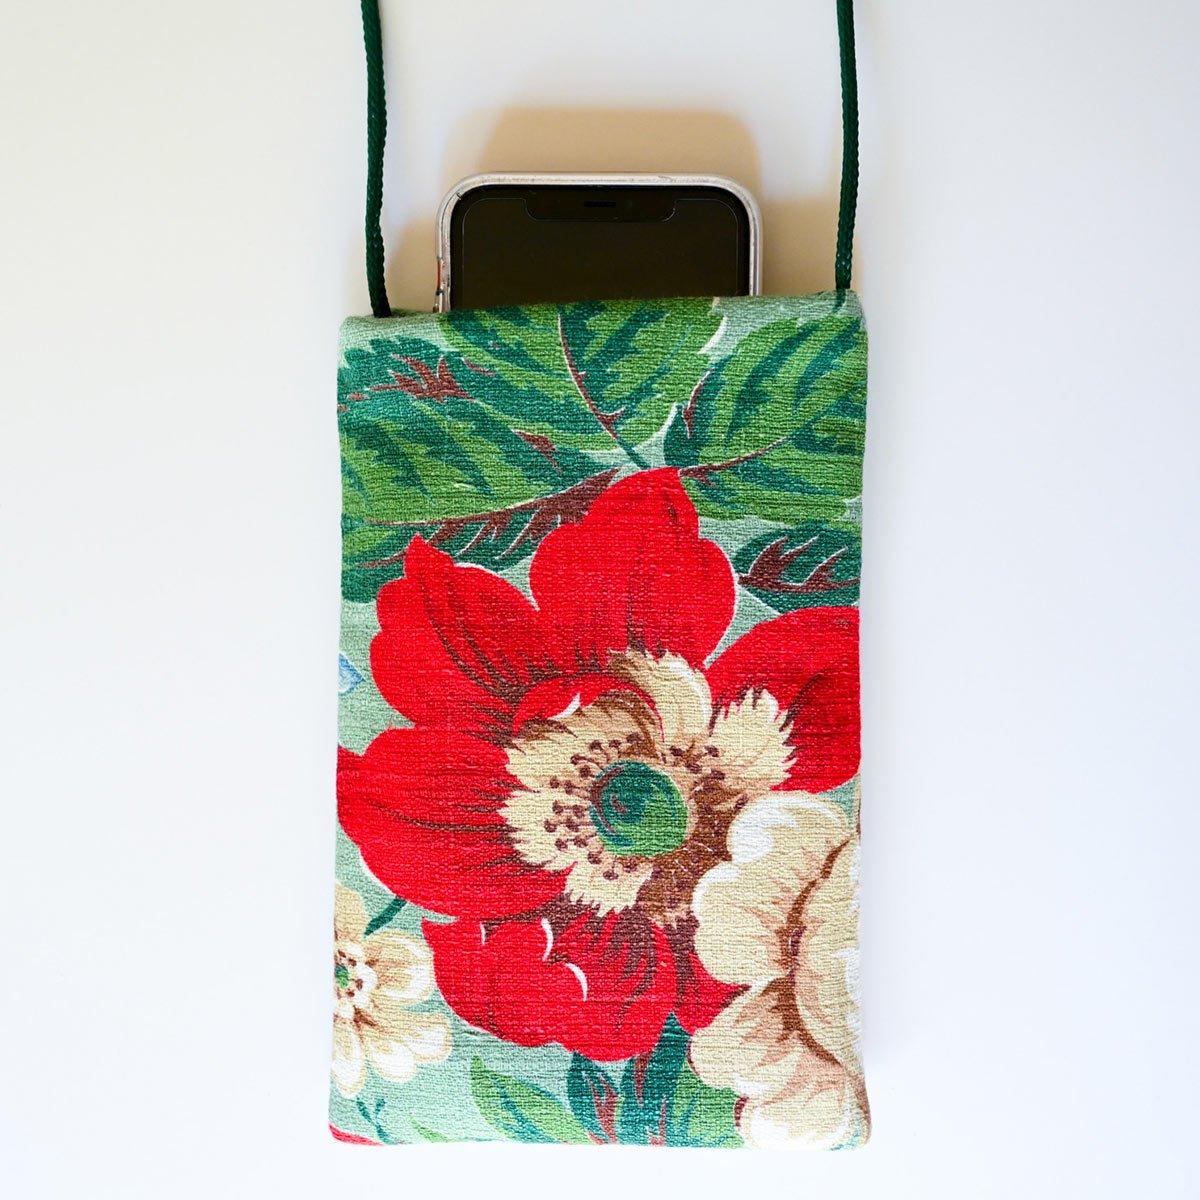 Cell phone Bag Floral Motif on Green